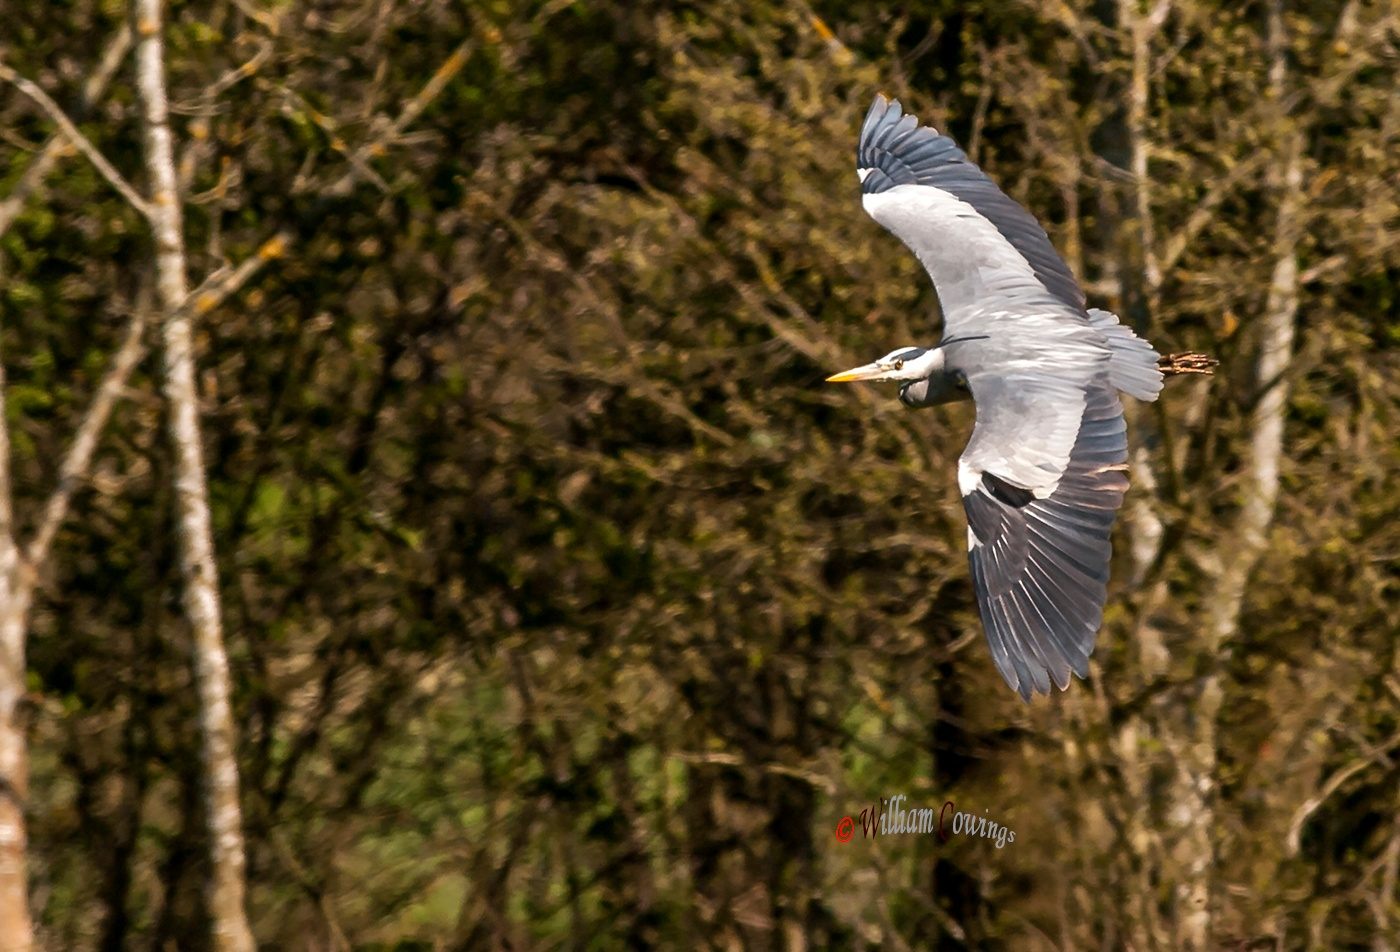 A Grey Heron Turn by williamcowings